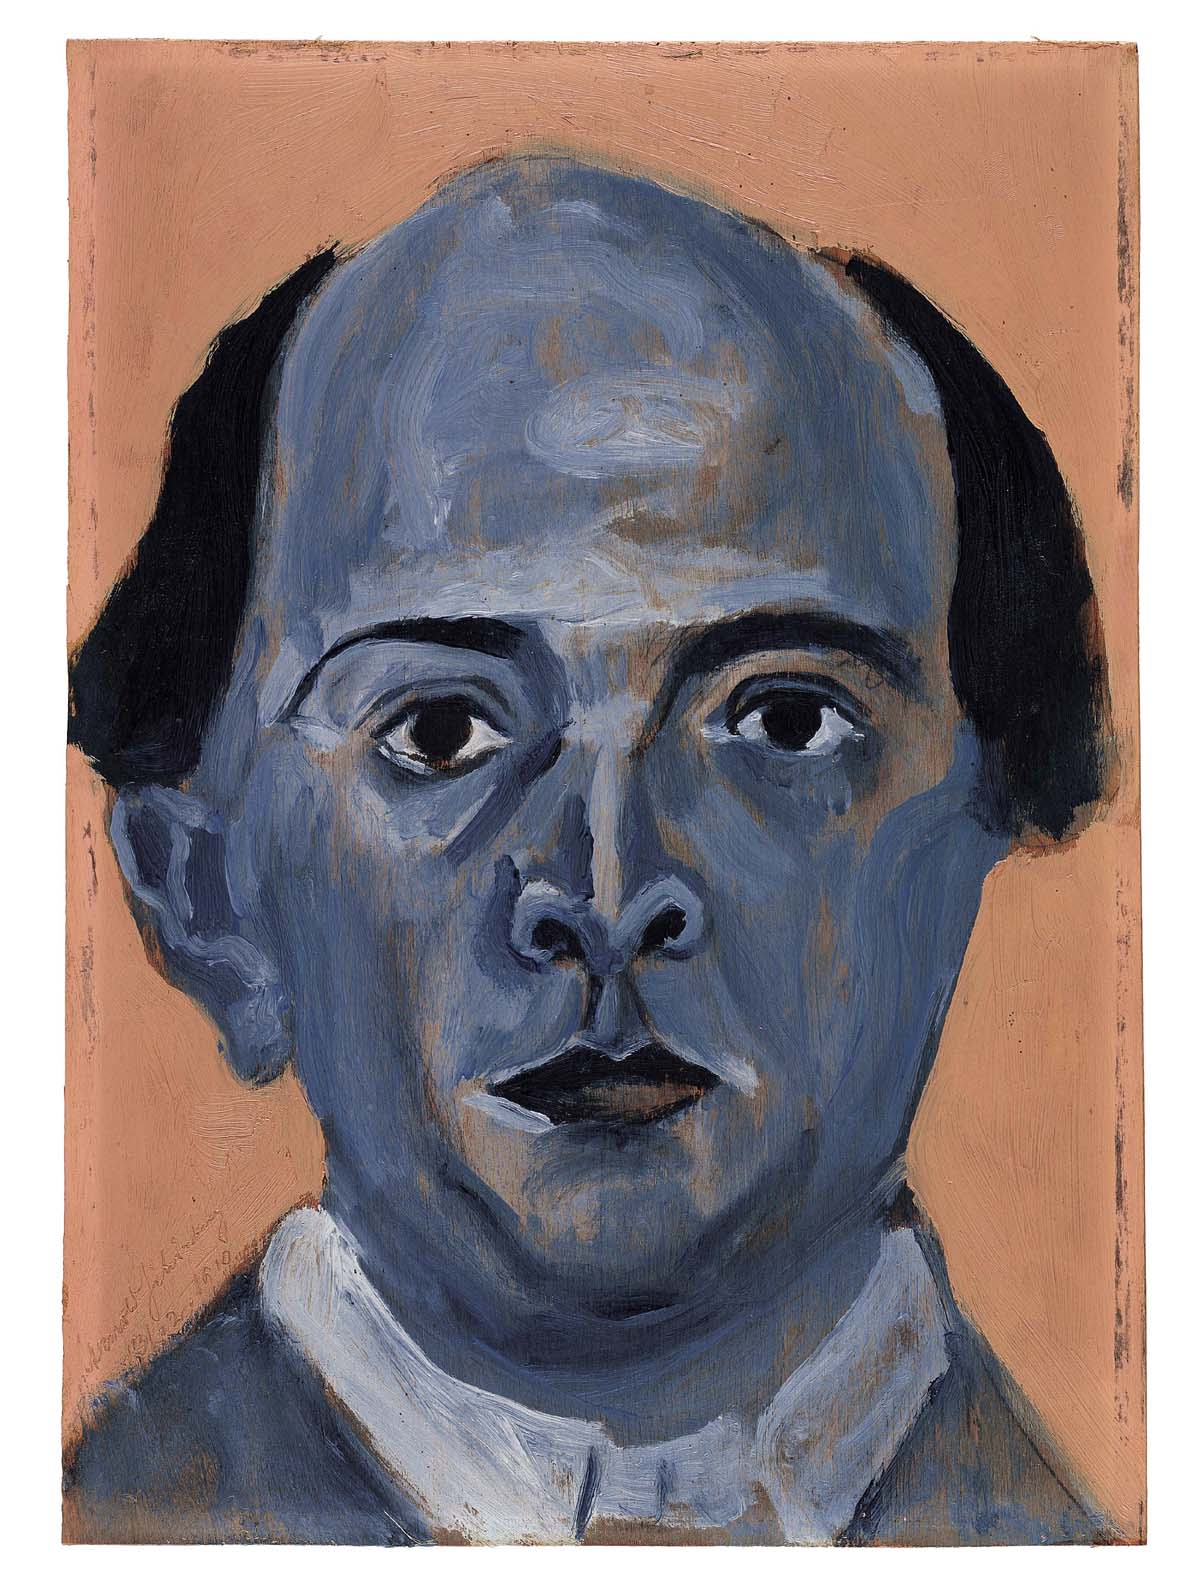 Schoenberg: Blue Self Portrait (1910)